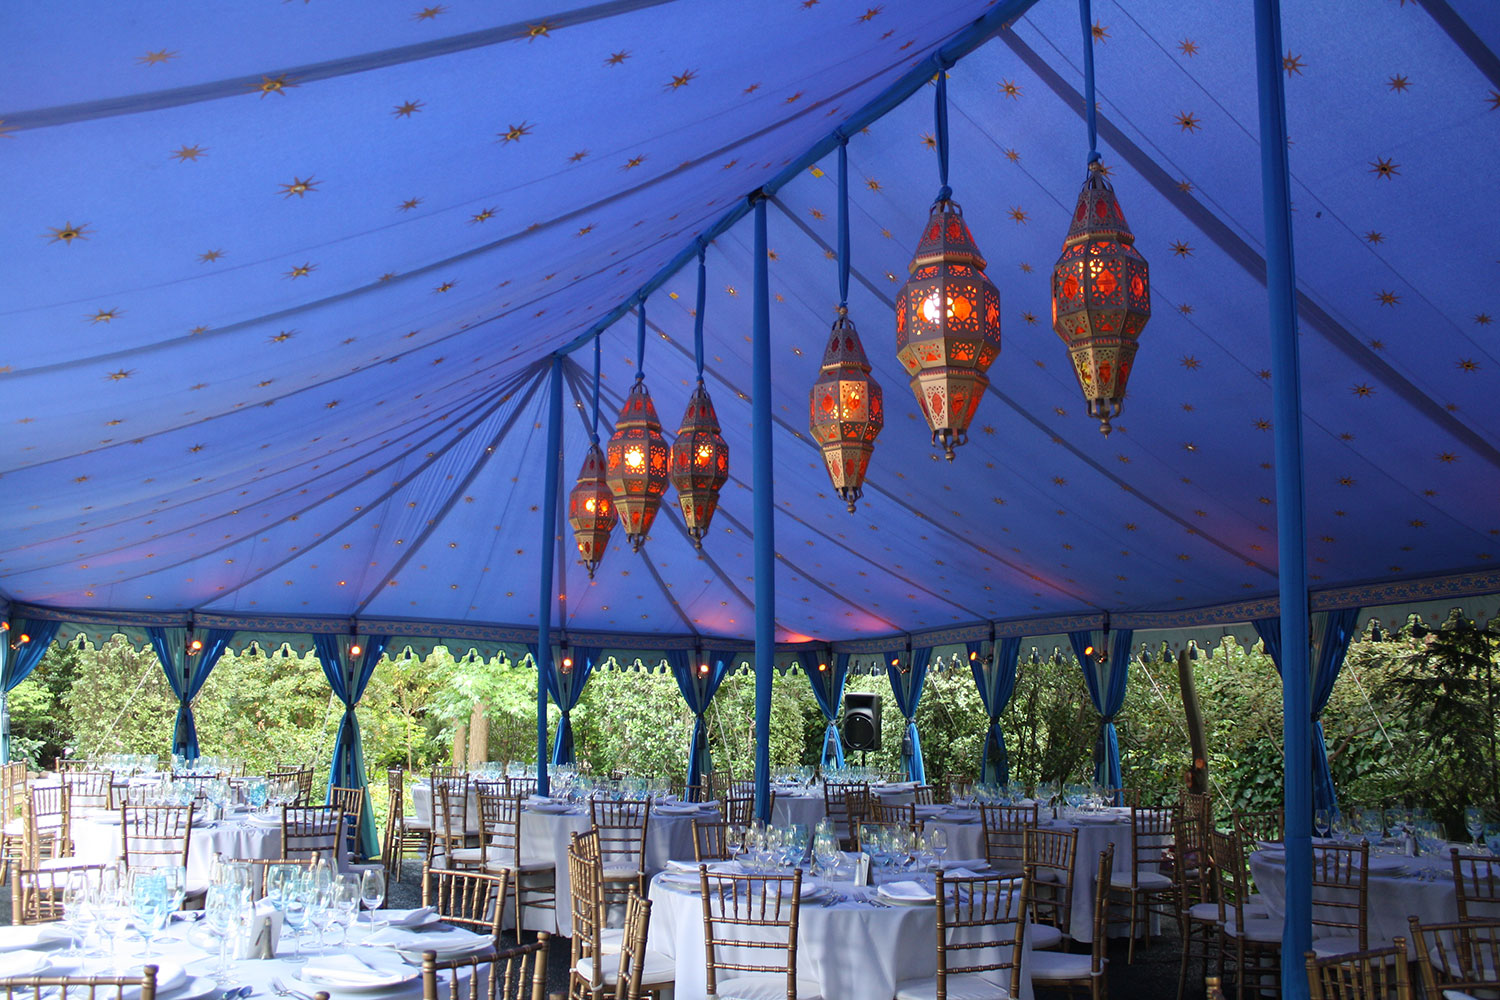 raj-tents-maharaja-inside-blue.jpg